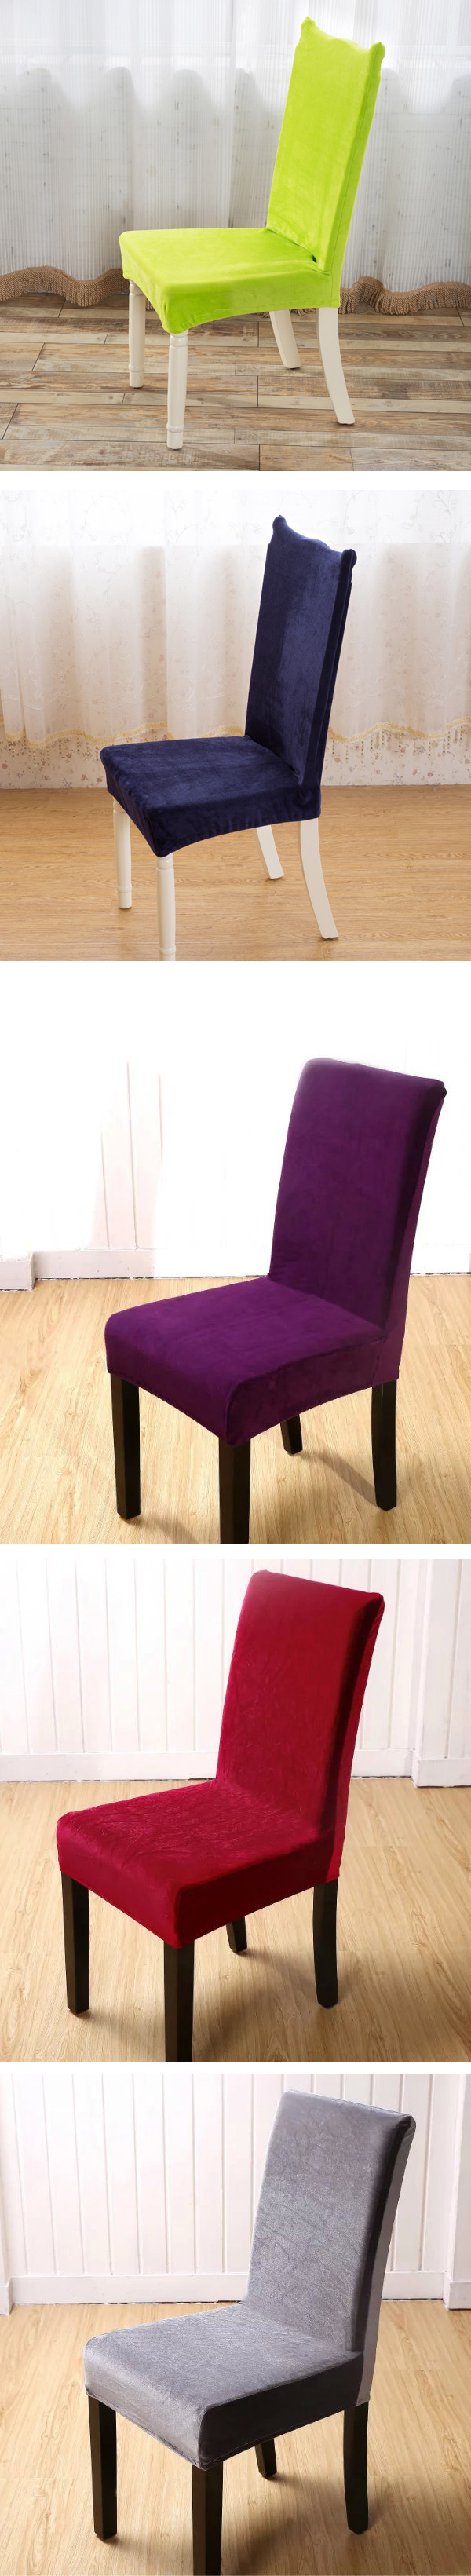 Plush Thicken Antifouling Elastic Stretch Spandex Chair Seat Cover Party Dining Room Wedding Decor